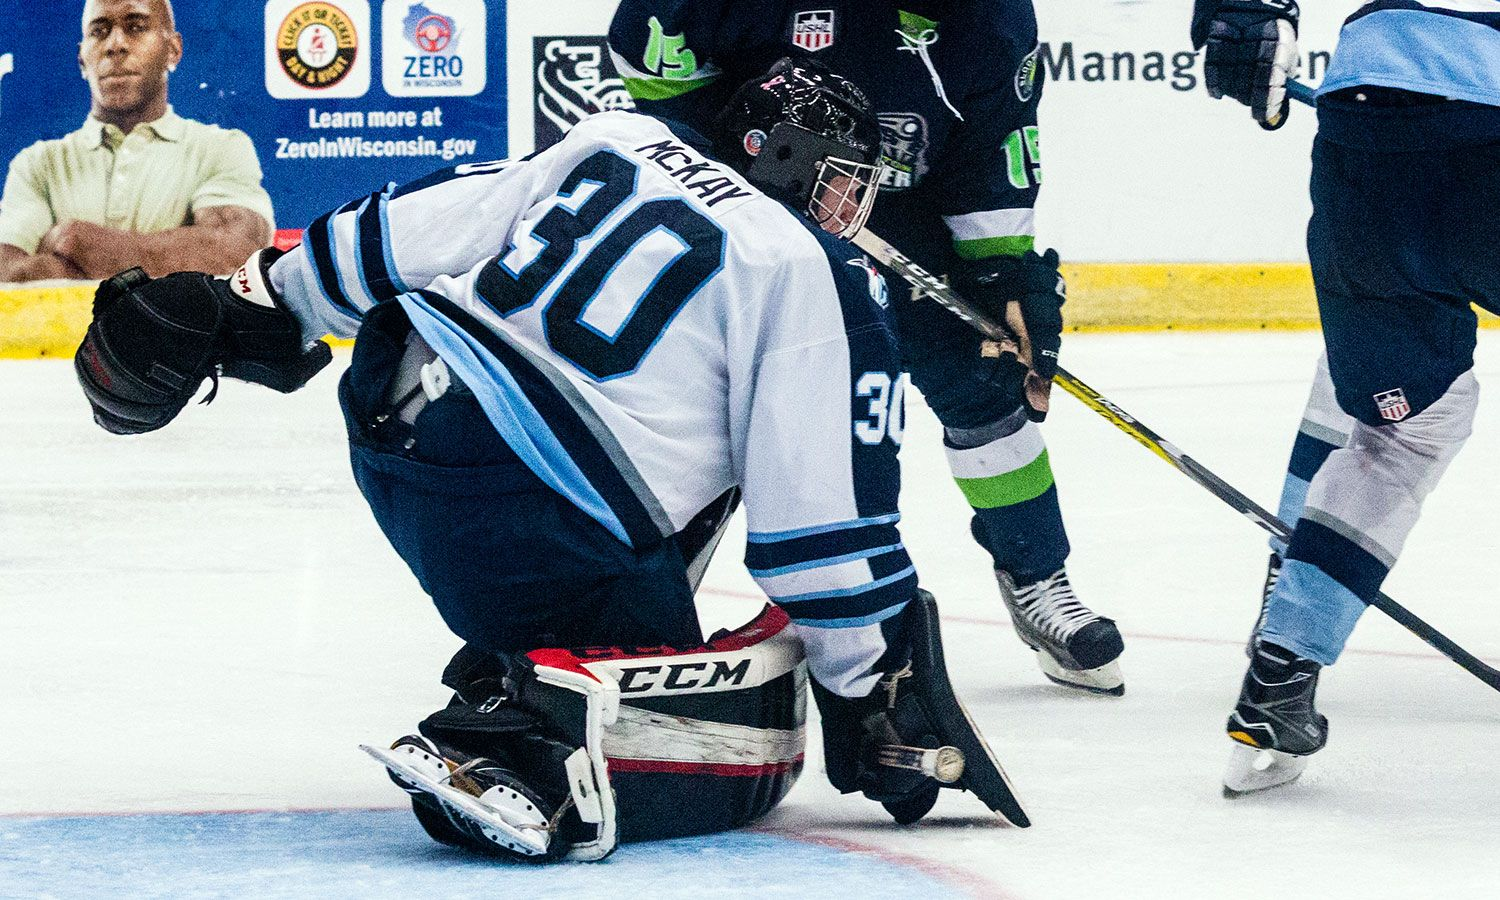 Madison Capitols goaltender Dryden McKay announced his commitment to the College of the Holy Cross.